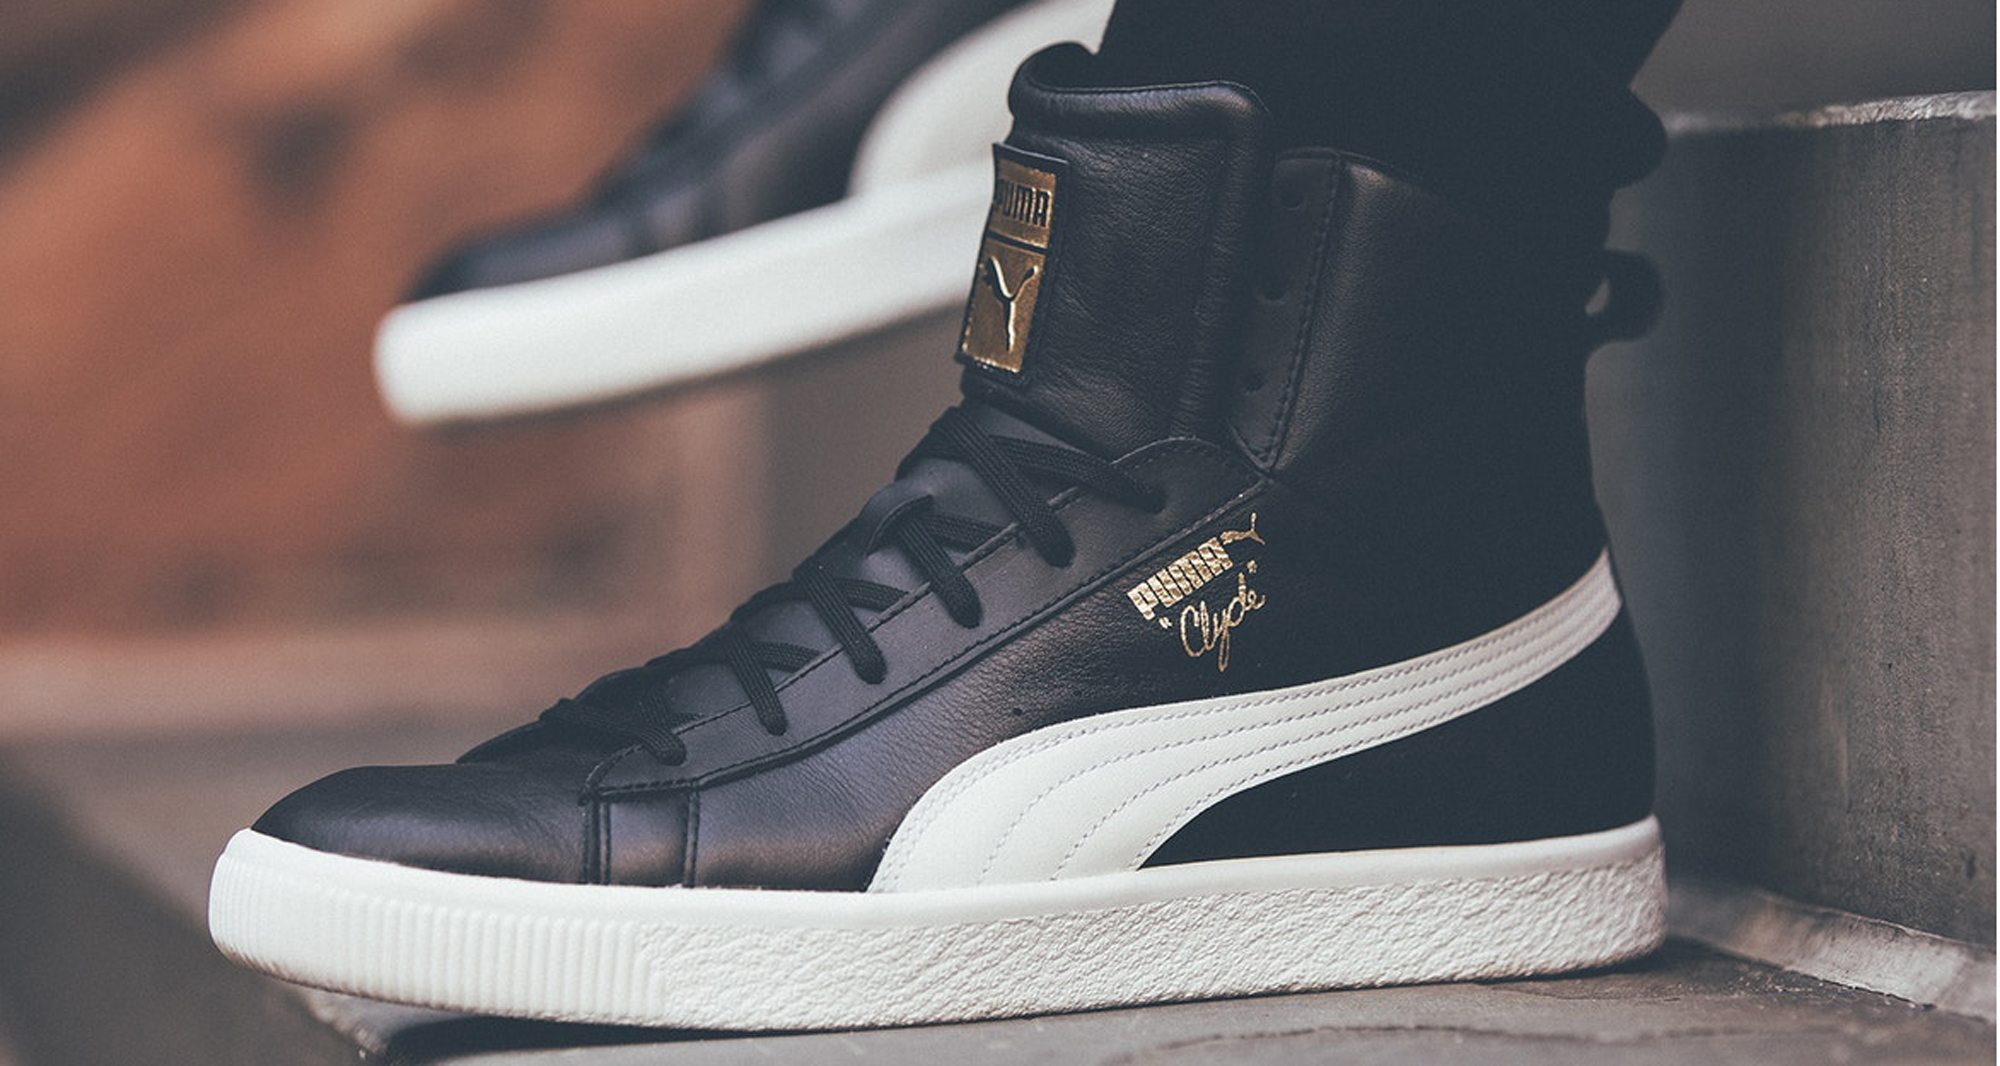 43a2e1c1c4a PUMA Clyde Core Mid    Detailed Look